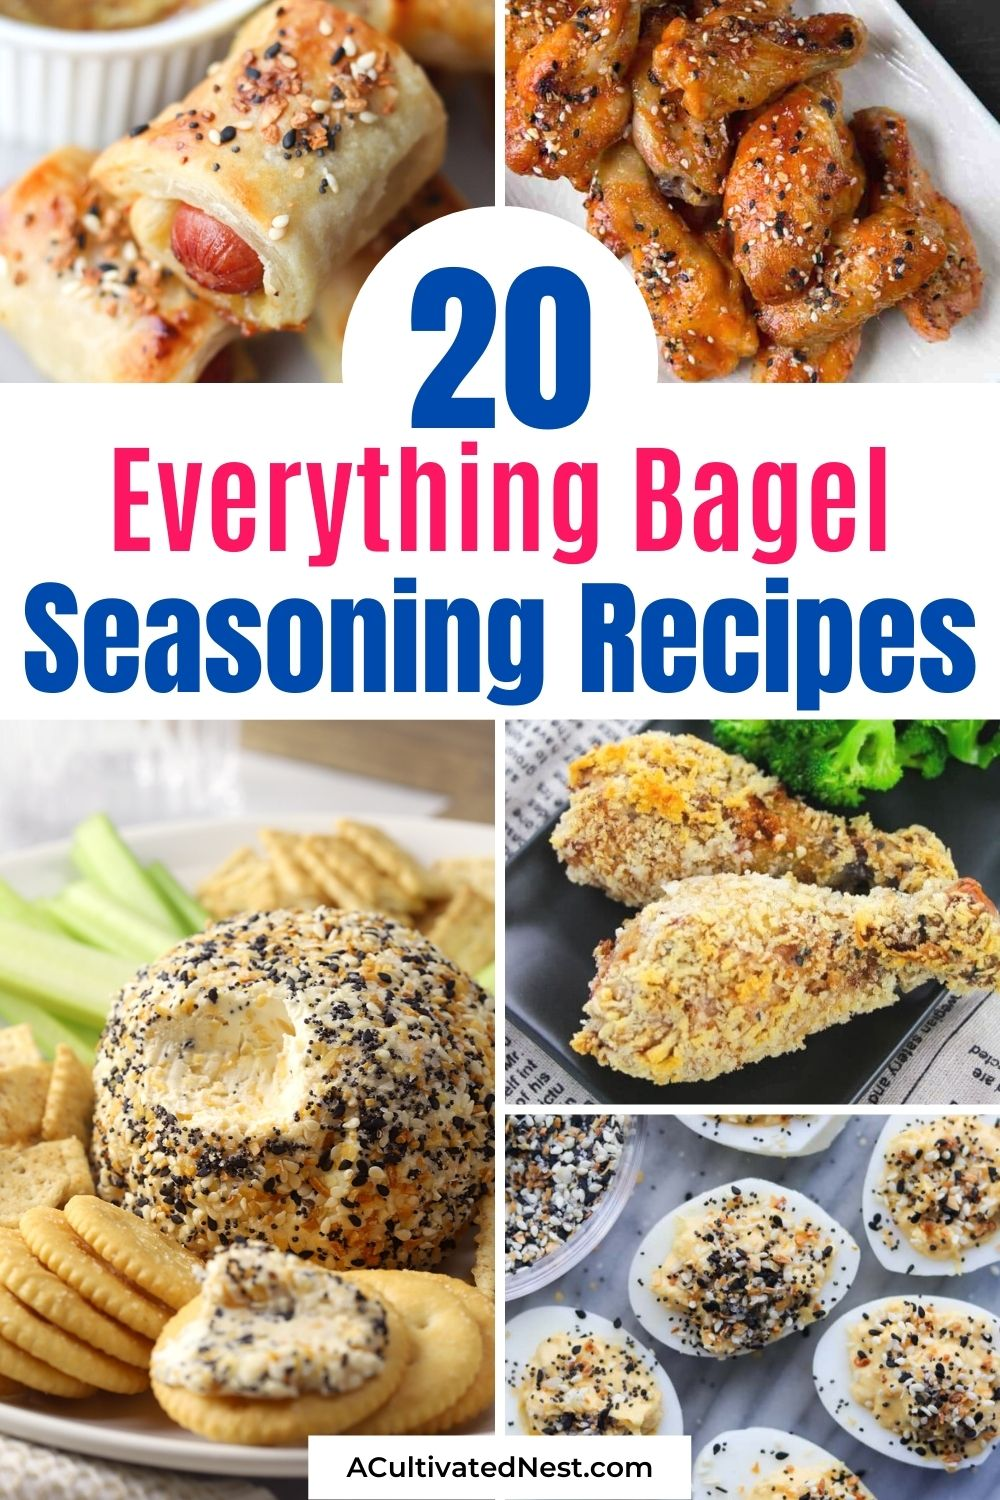 20 Everything Bagel Seasoning Recipes- For a quick and easy way to add flavor to any recipe, you should try everything bagel seasoning! These tasty everything bagel seasoning recipes are so flavorful, and easy to make, too!   #seasoning #everythingBagelSeasoning #recipeIdeas #appetizers #ACultivatedNest